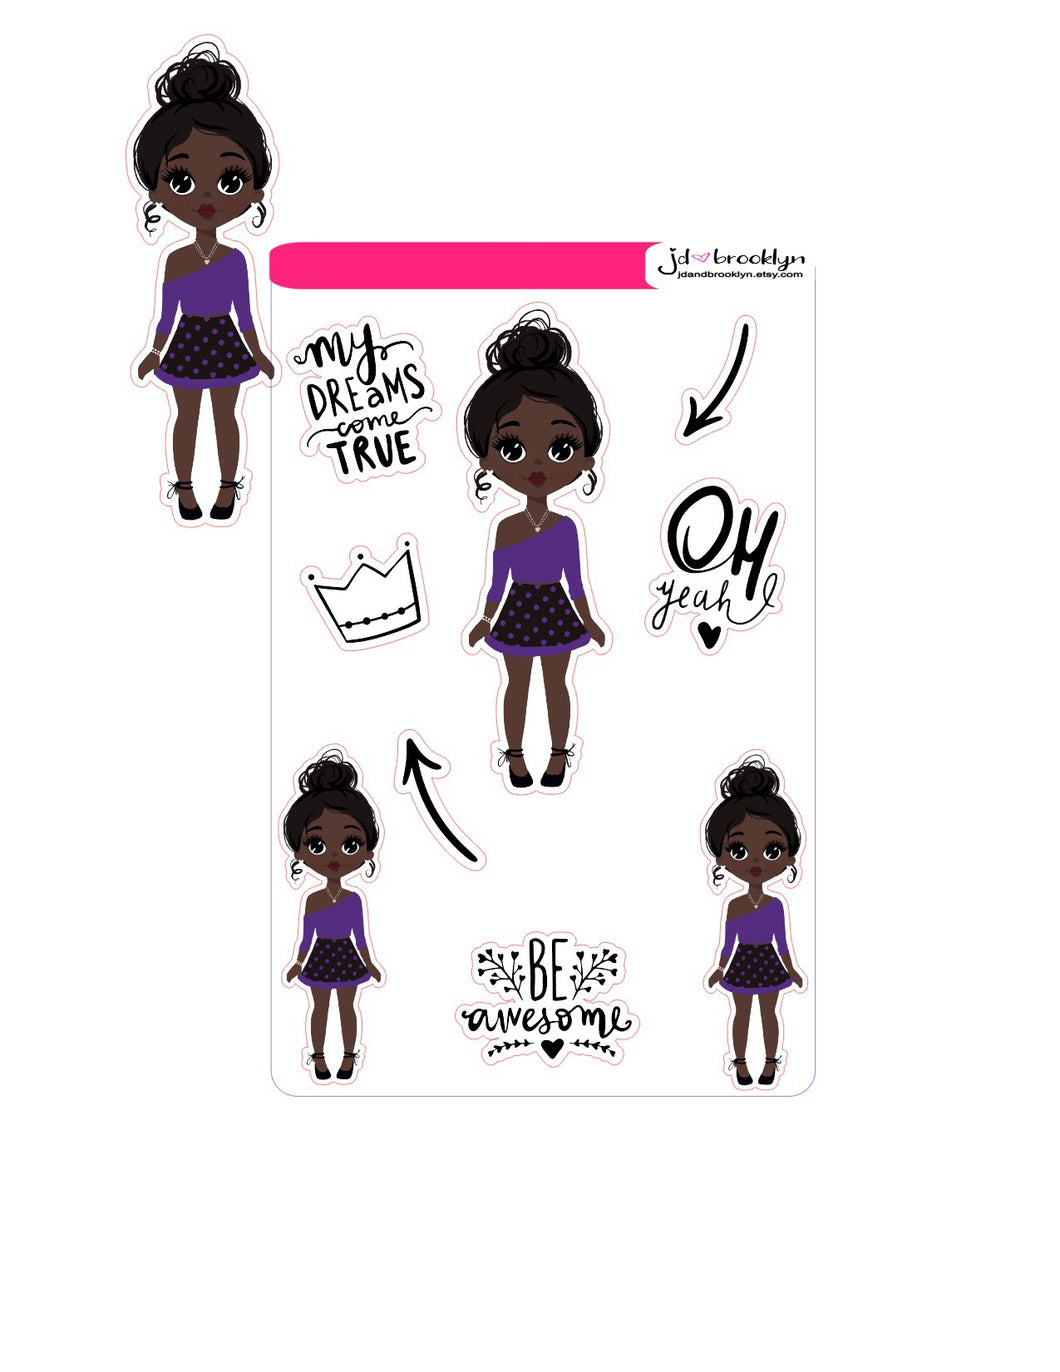 Polka dot skirt(doll +graphic) Sticker Sheet or die cuts